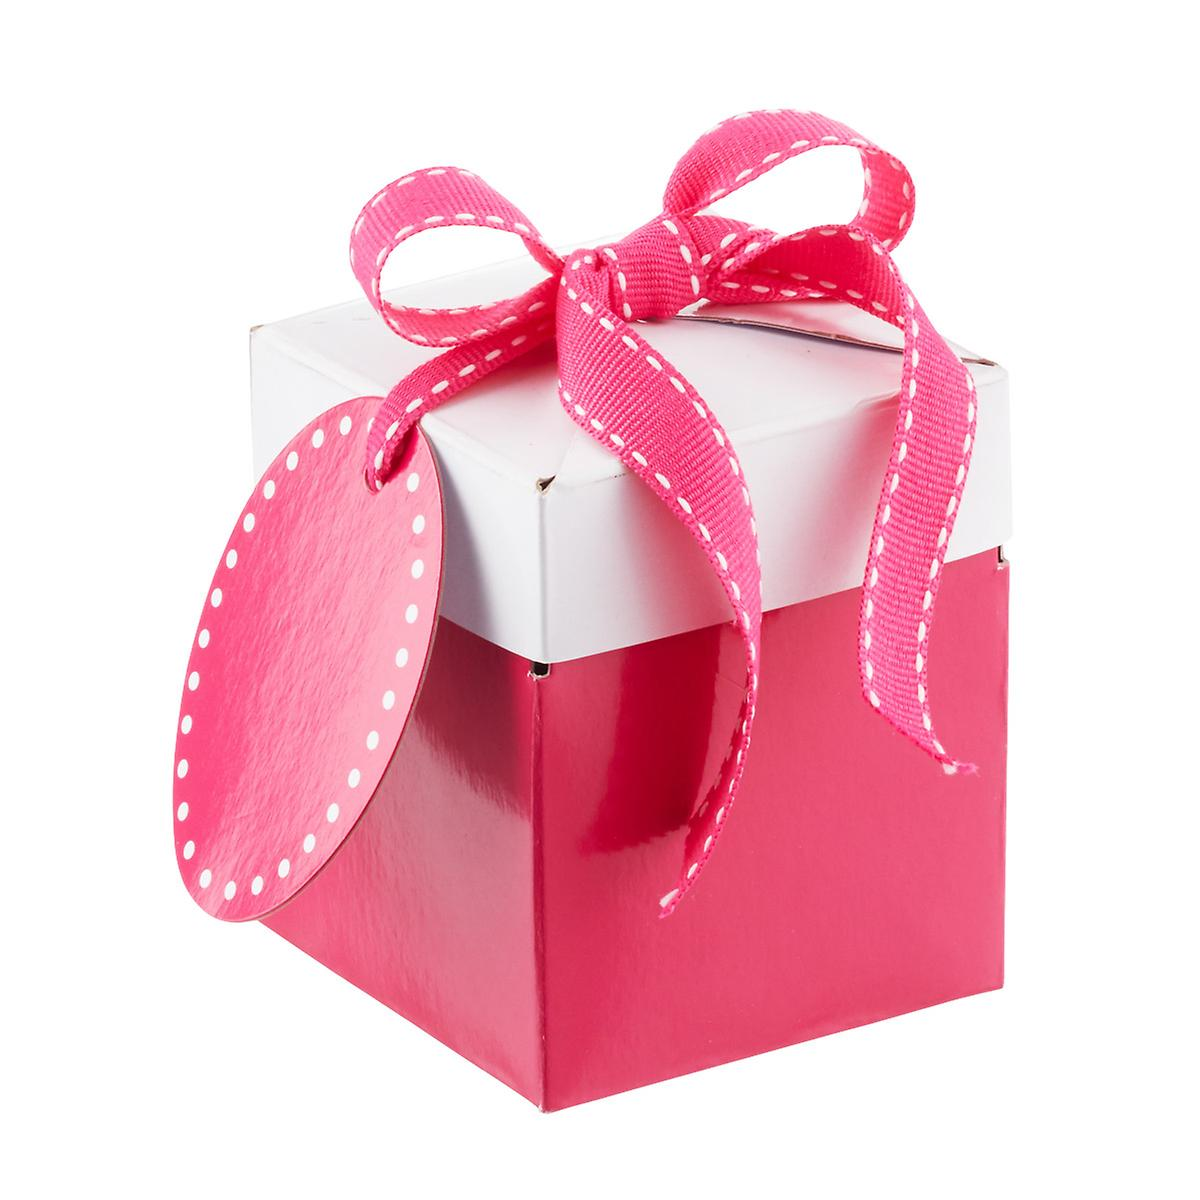 Pink Pop Up Gift Boxes